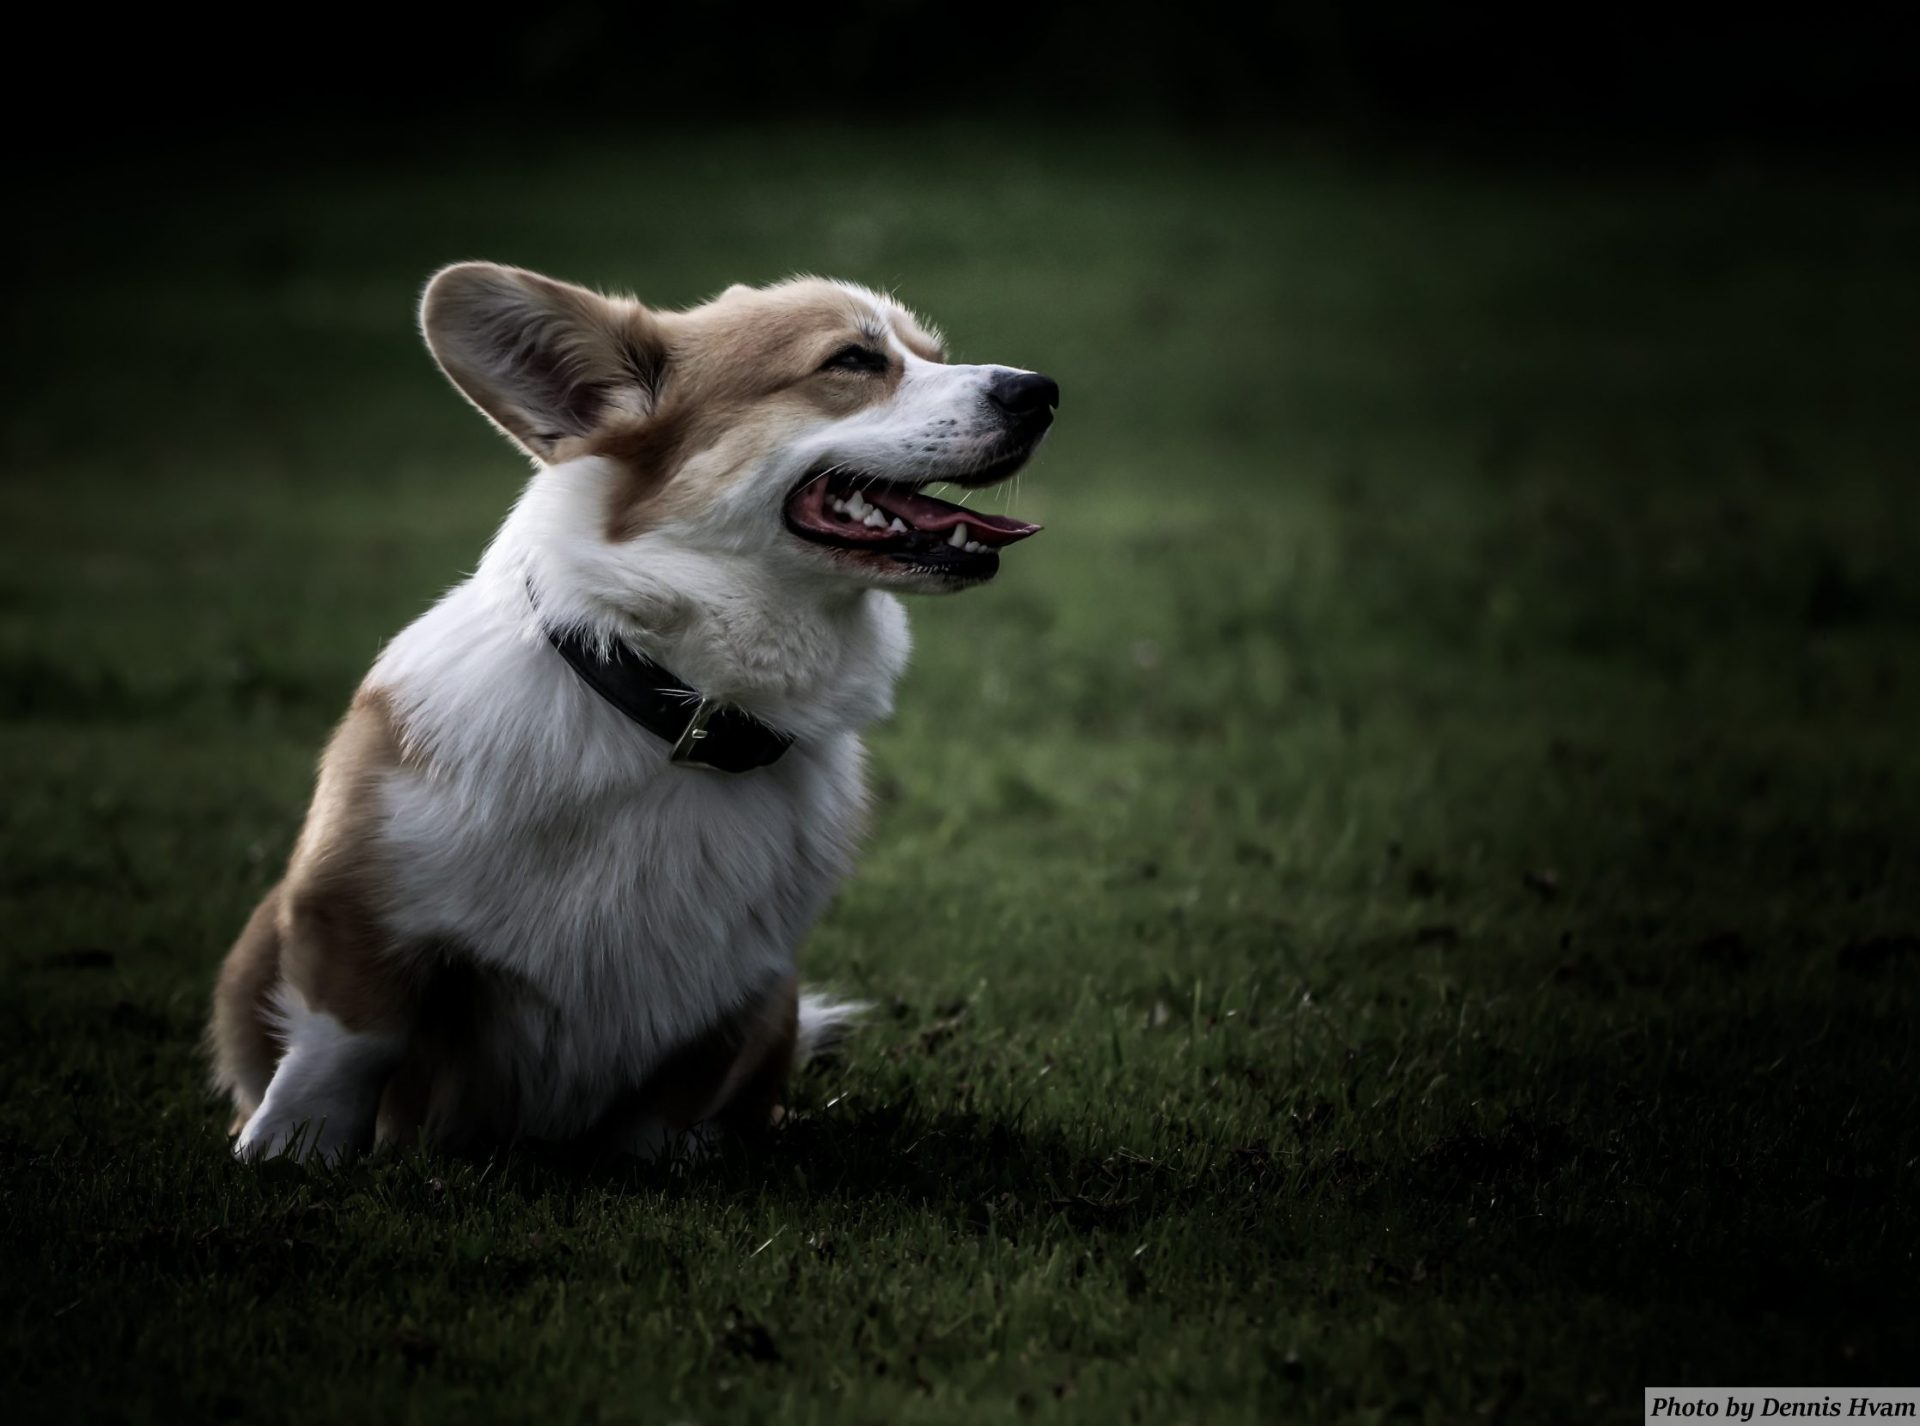 Jax the Corgi, click on the picture for setup